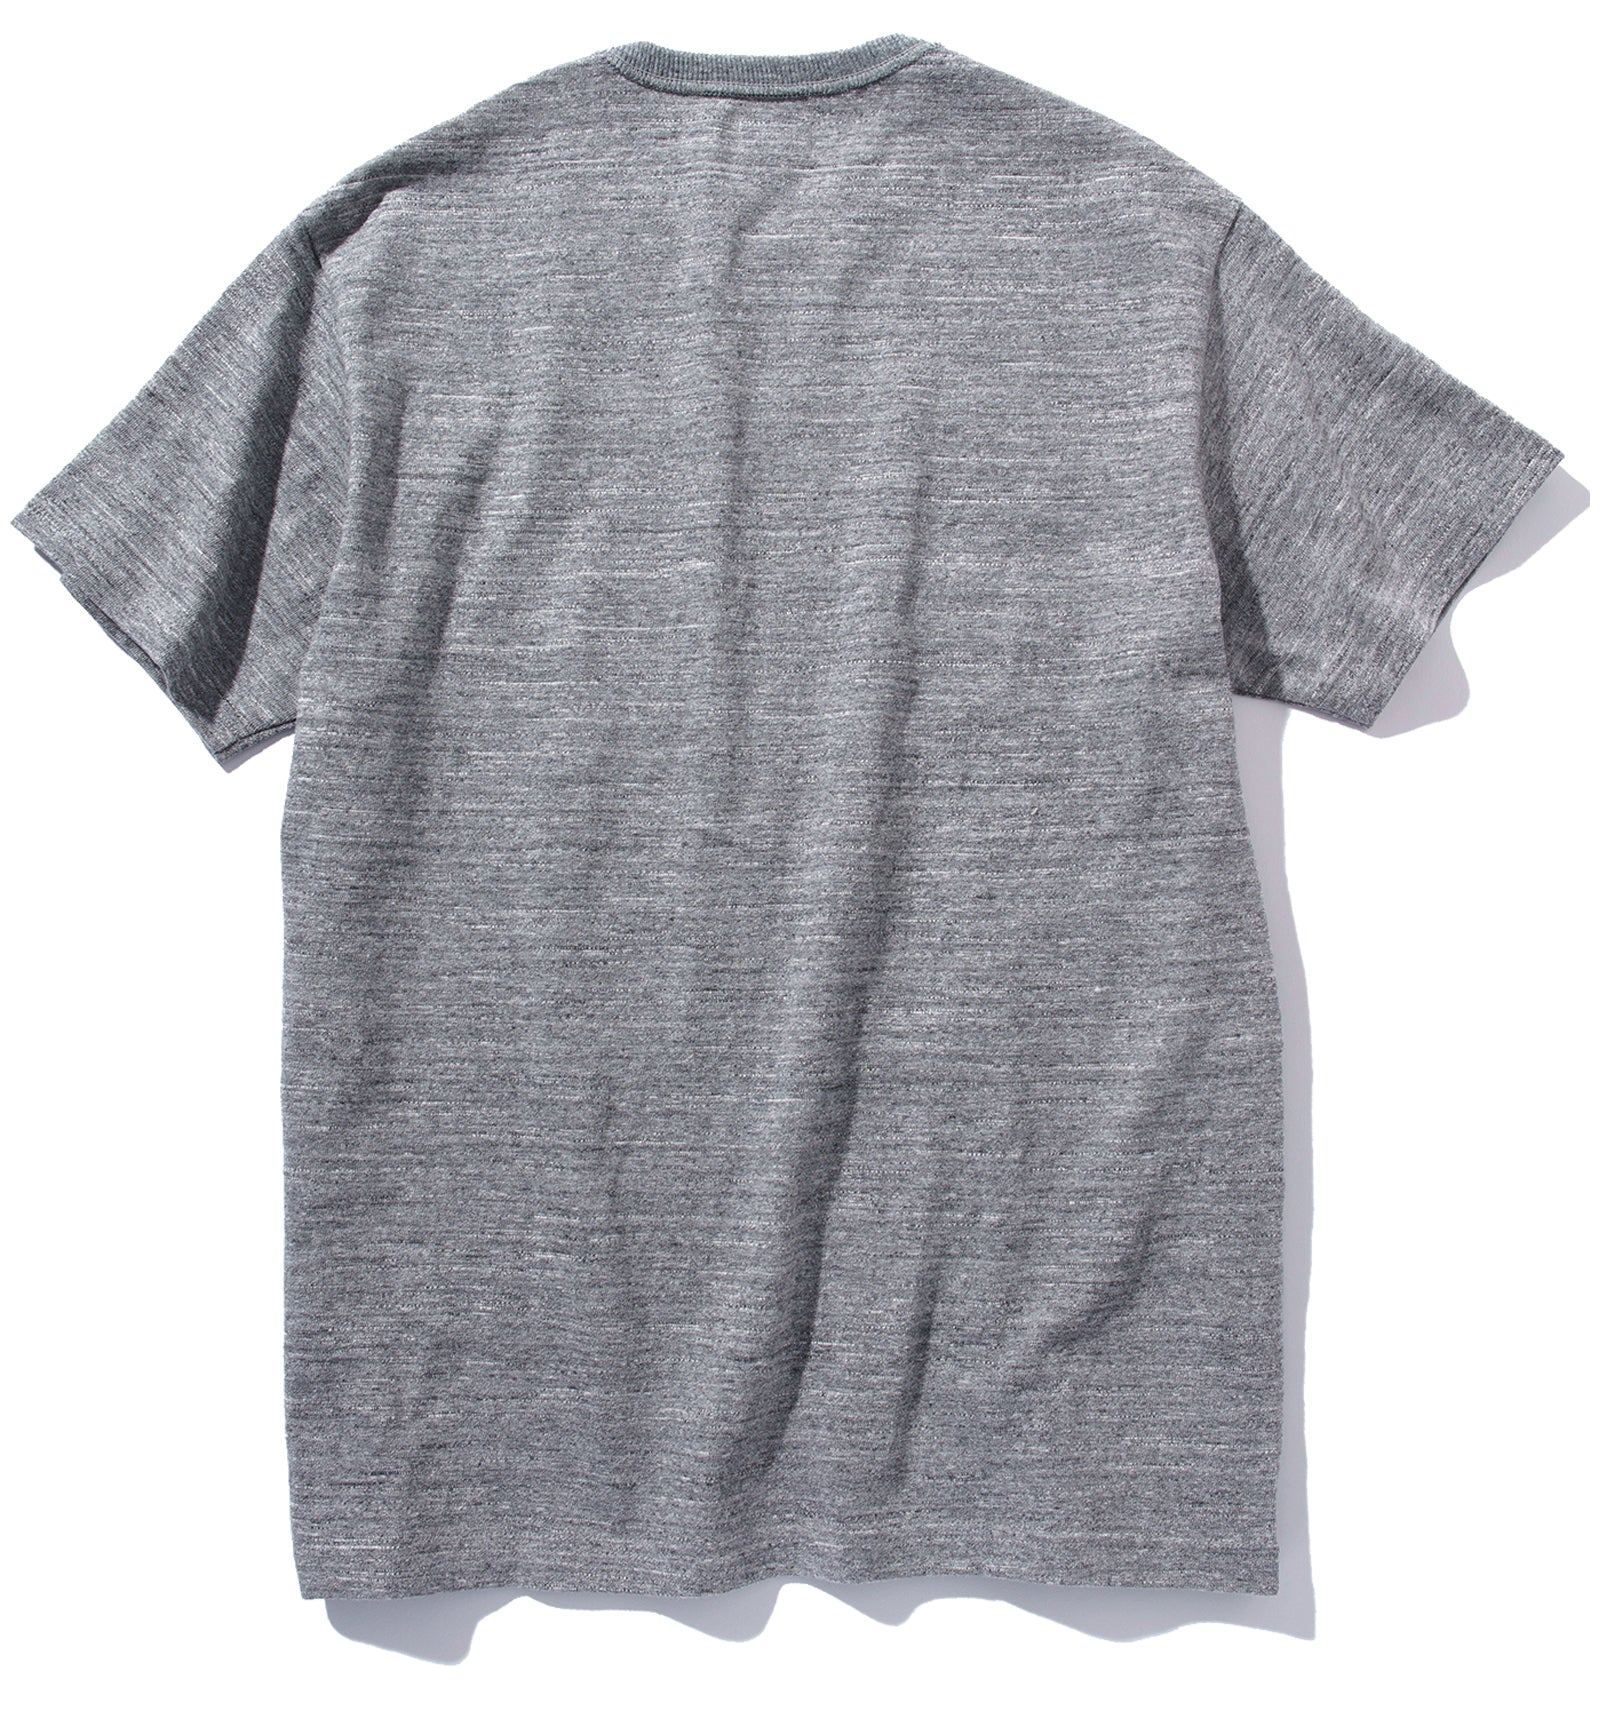 ATHLETIC T-SHIRT / LOOP-WHEEL